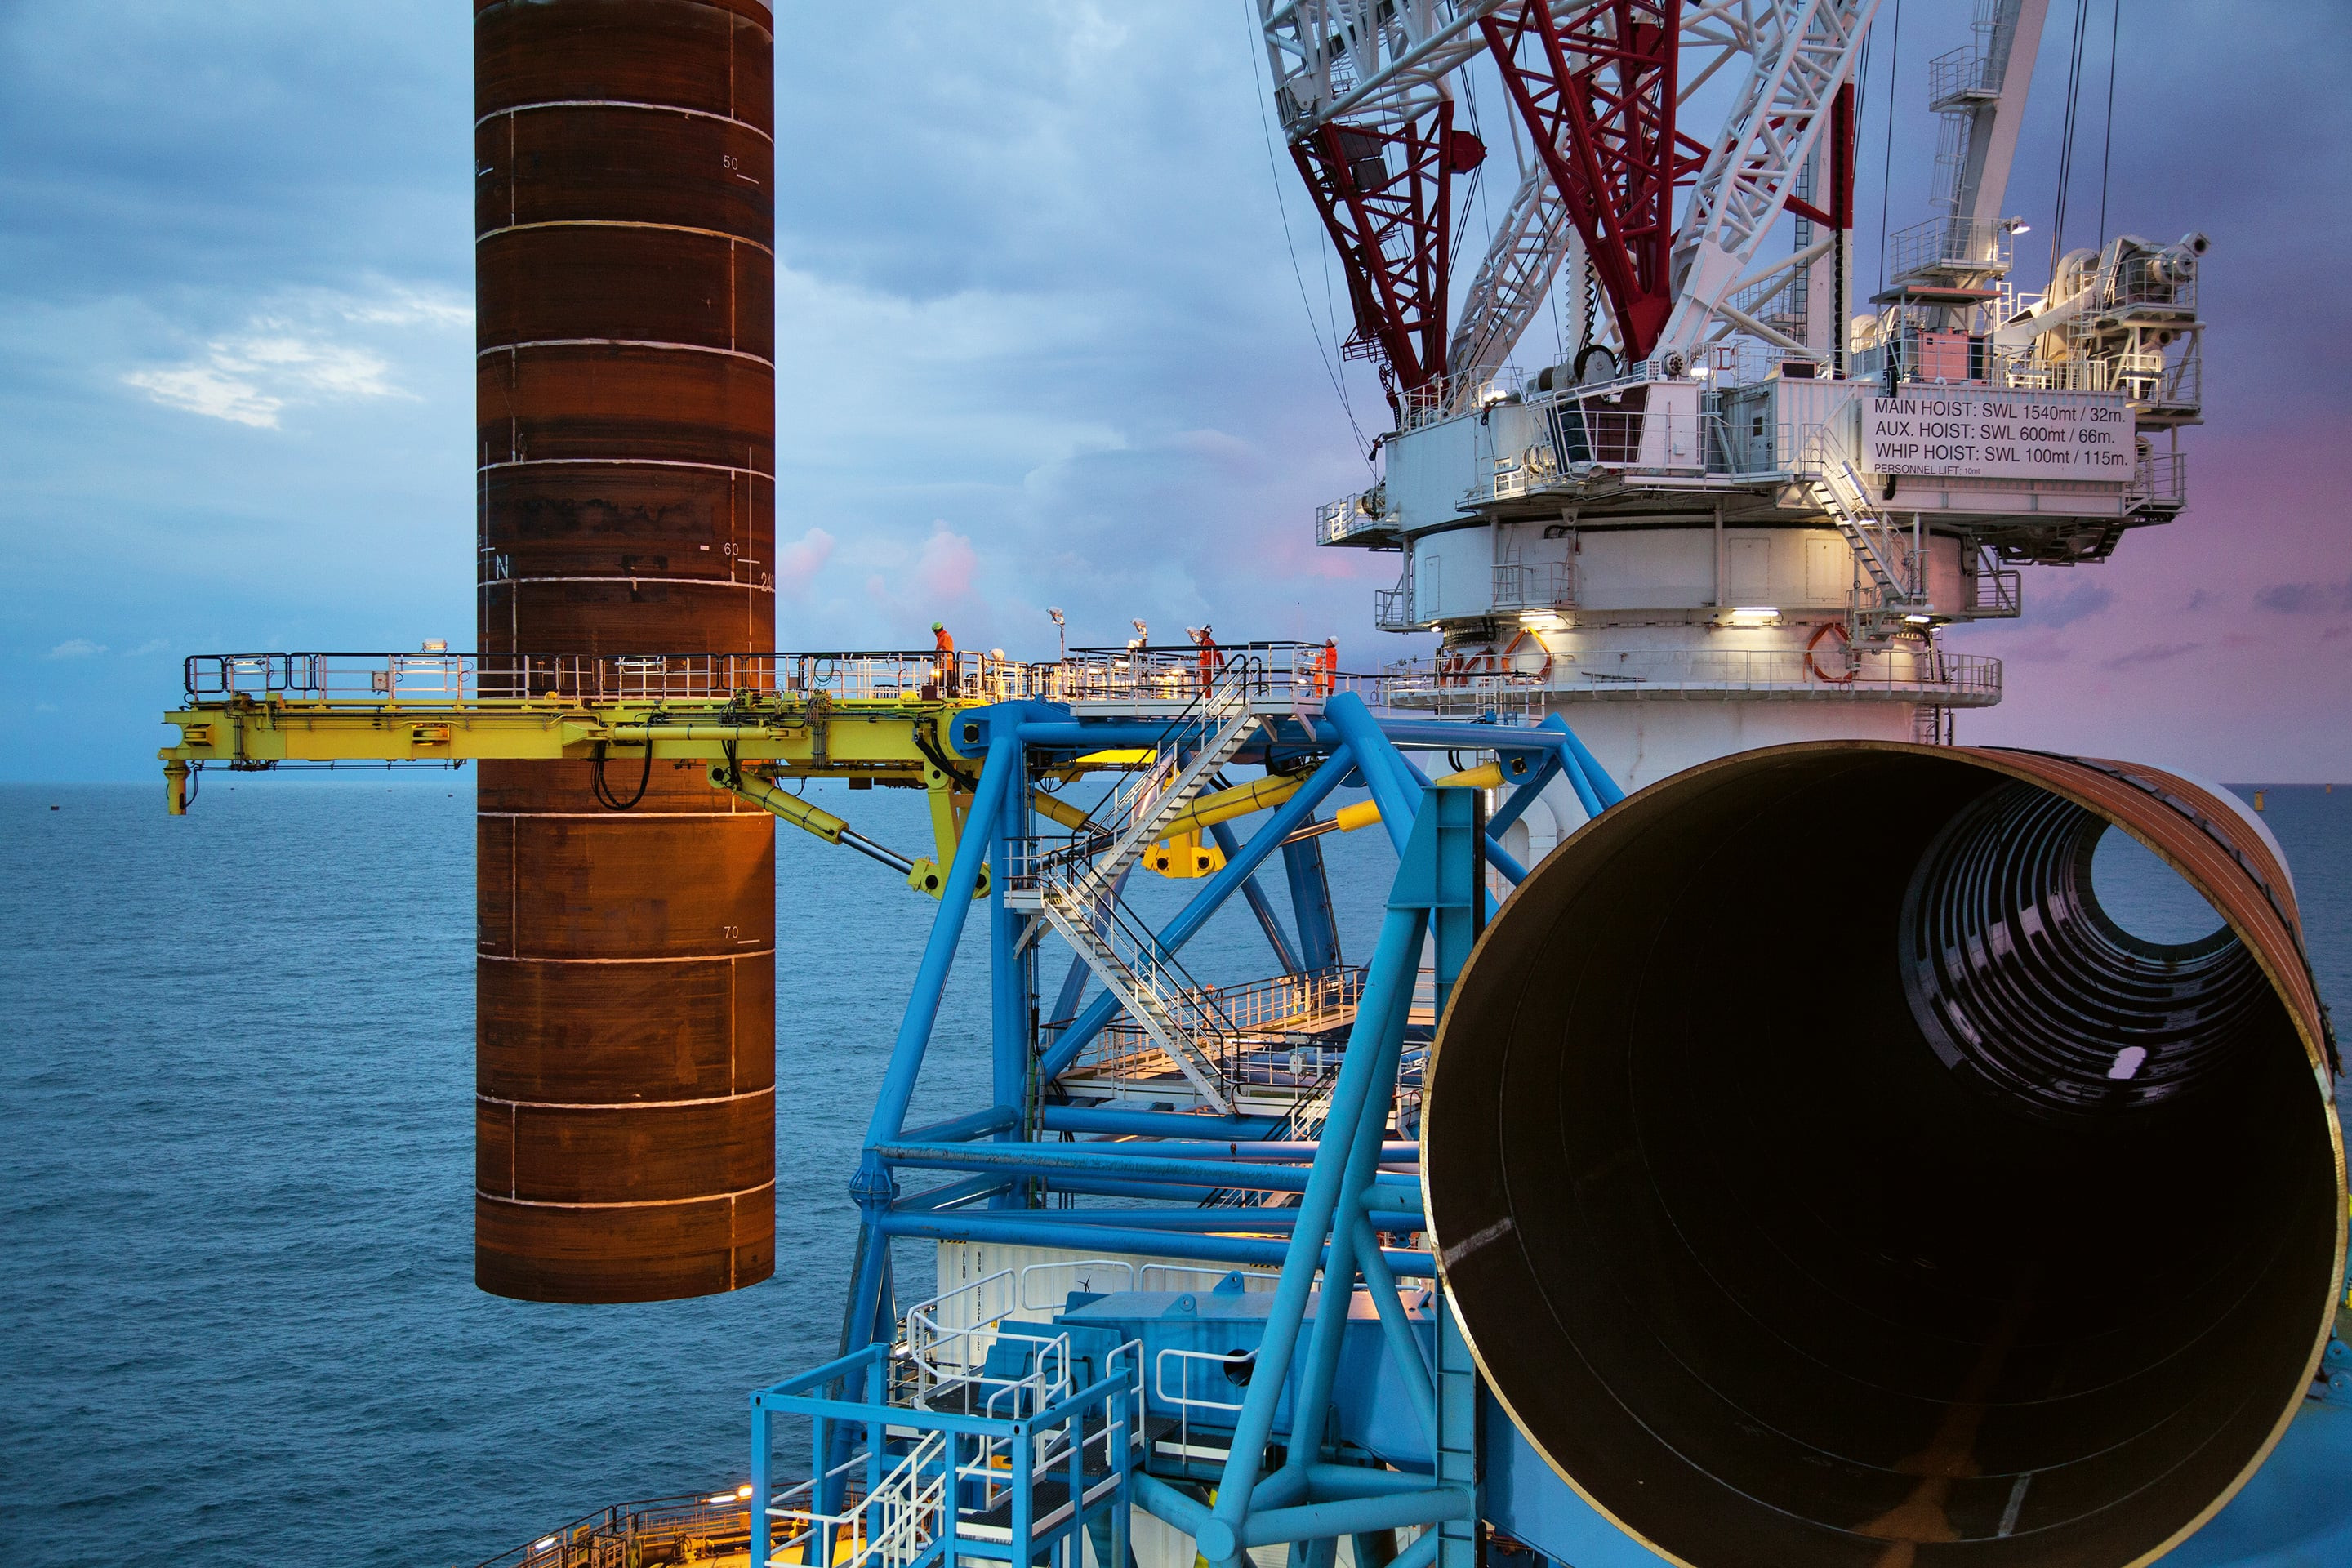 XXL monopile installation for the Veja Mate offshore wind farm